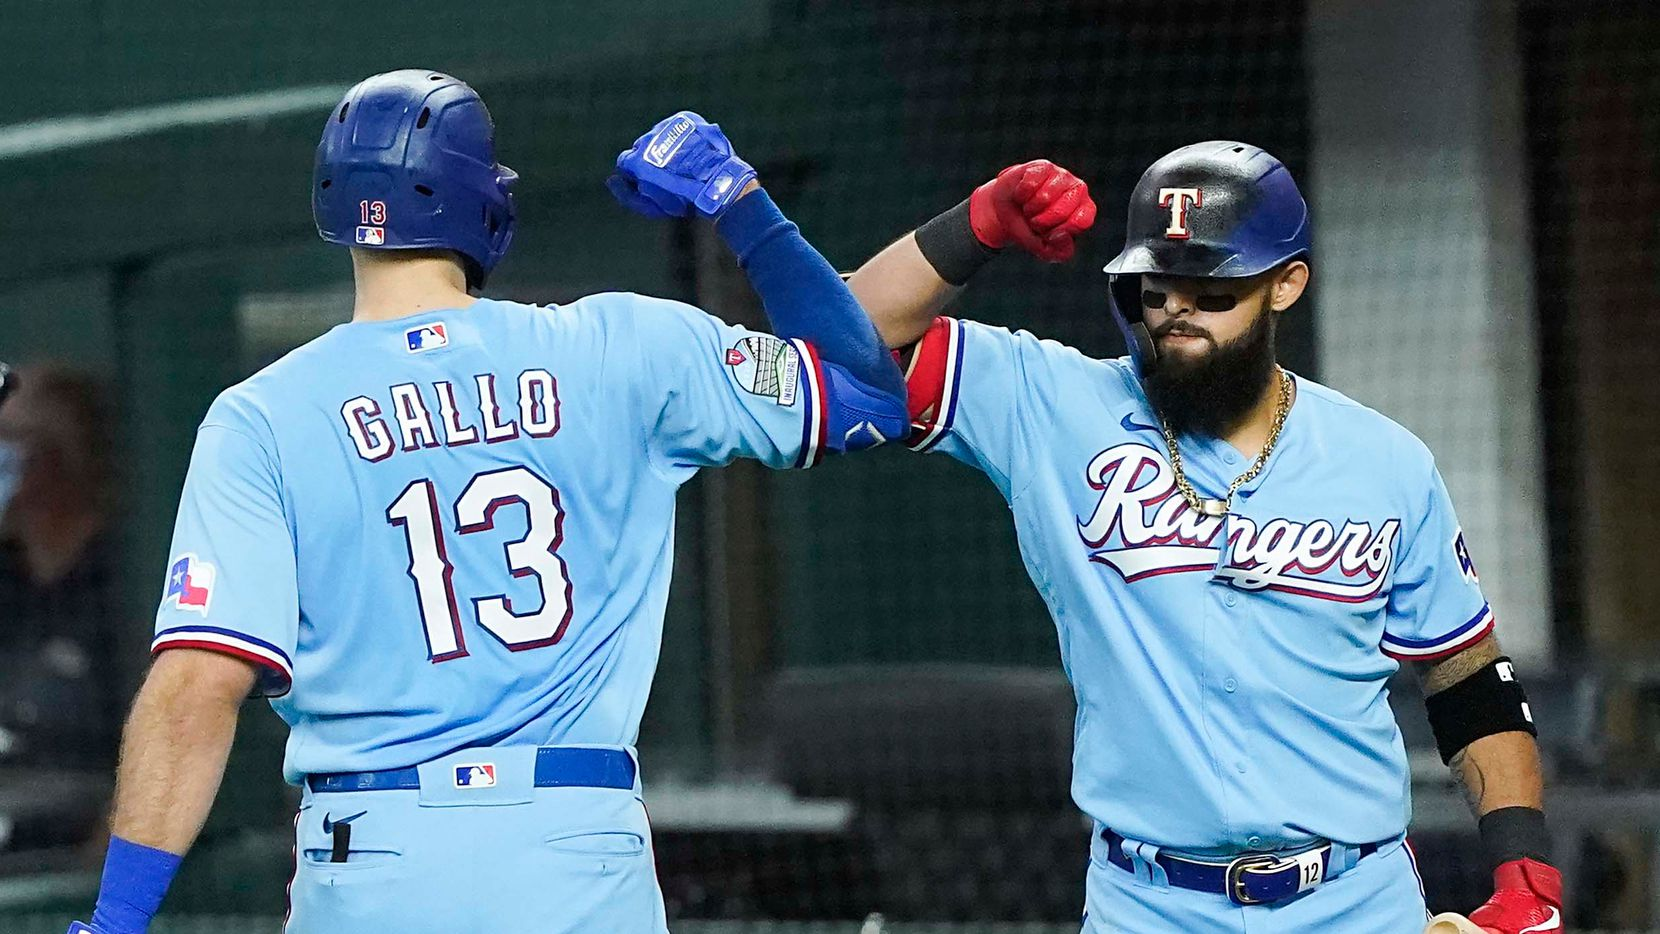 Texas Rangers outfielder Joey Gallo celebrates with second baseman Rougned Odor after hitting the first official home run in the history of the new ballpark during the second inning against off of Colorado Rockies starting pitcher Kyle Freeland at Globe Life Field on Sunday, July 26, 2020.